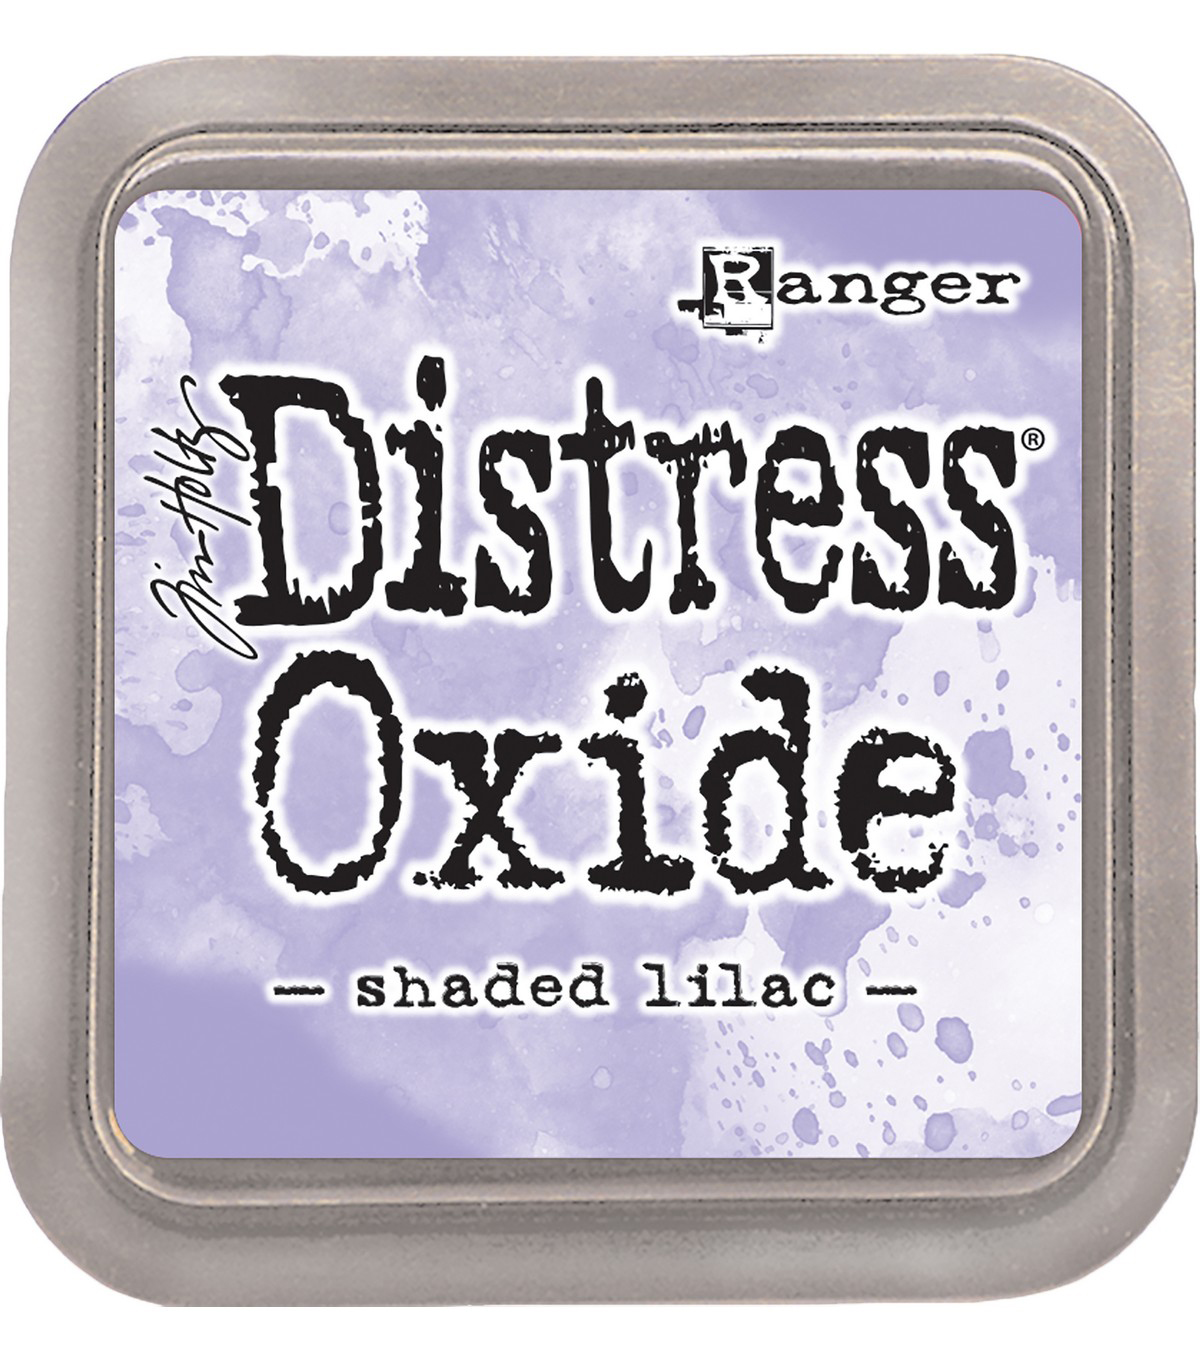 Tim Holtz Distress Oxide Ink Pad, Shaded Lilac